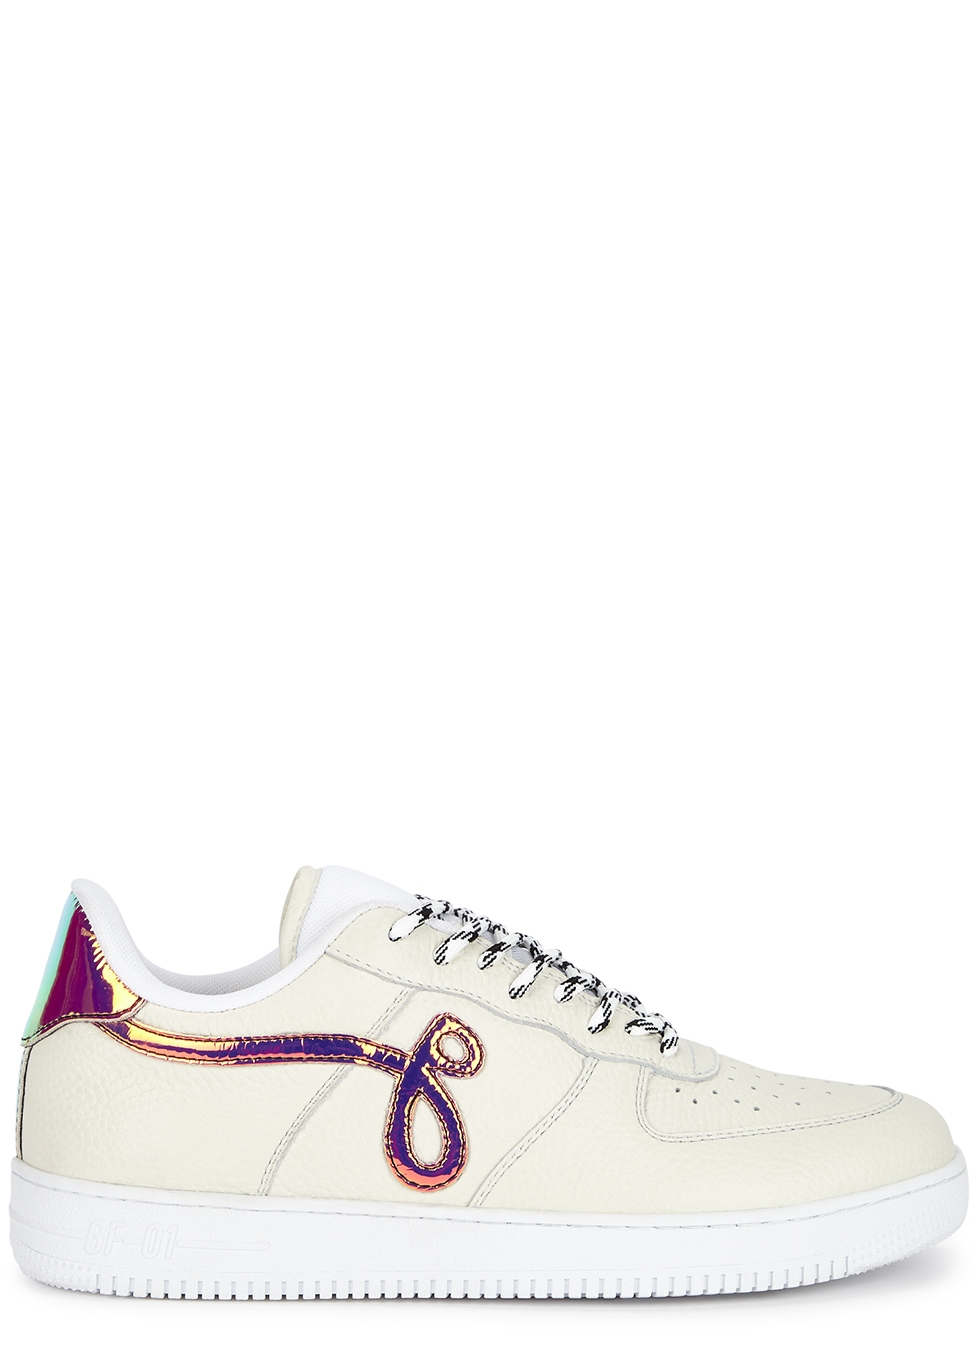 Off-white grained leather sneakers